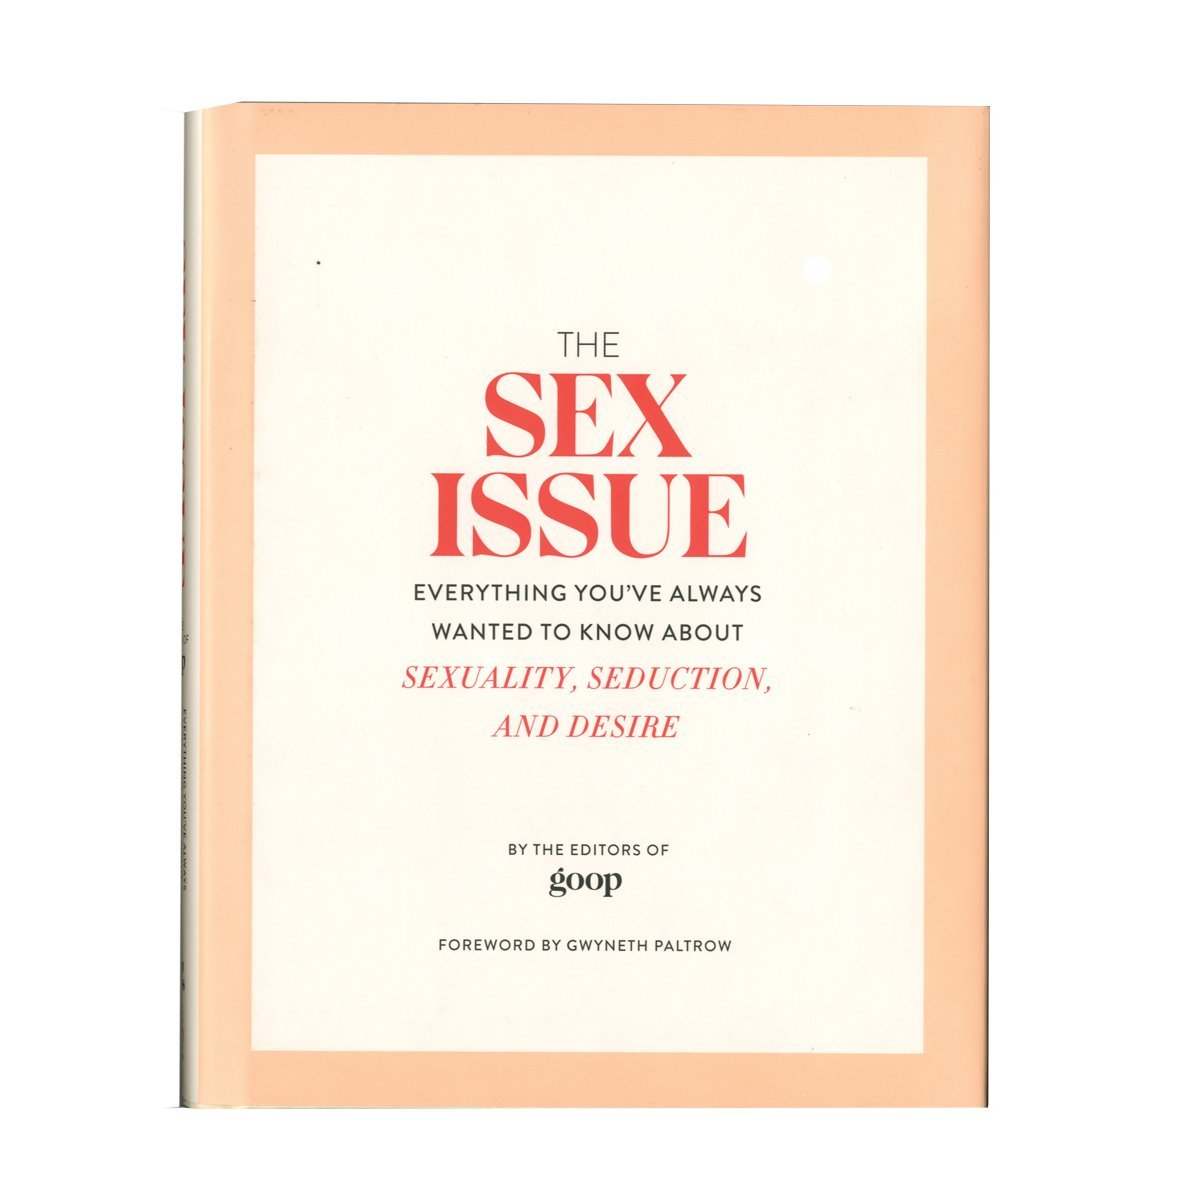 The Sex Issue